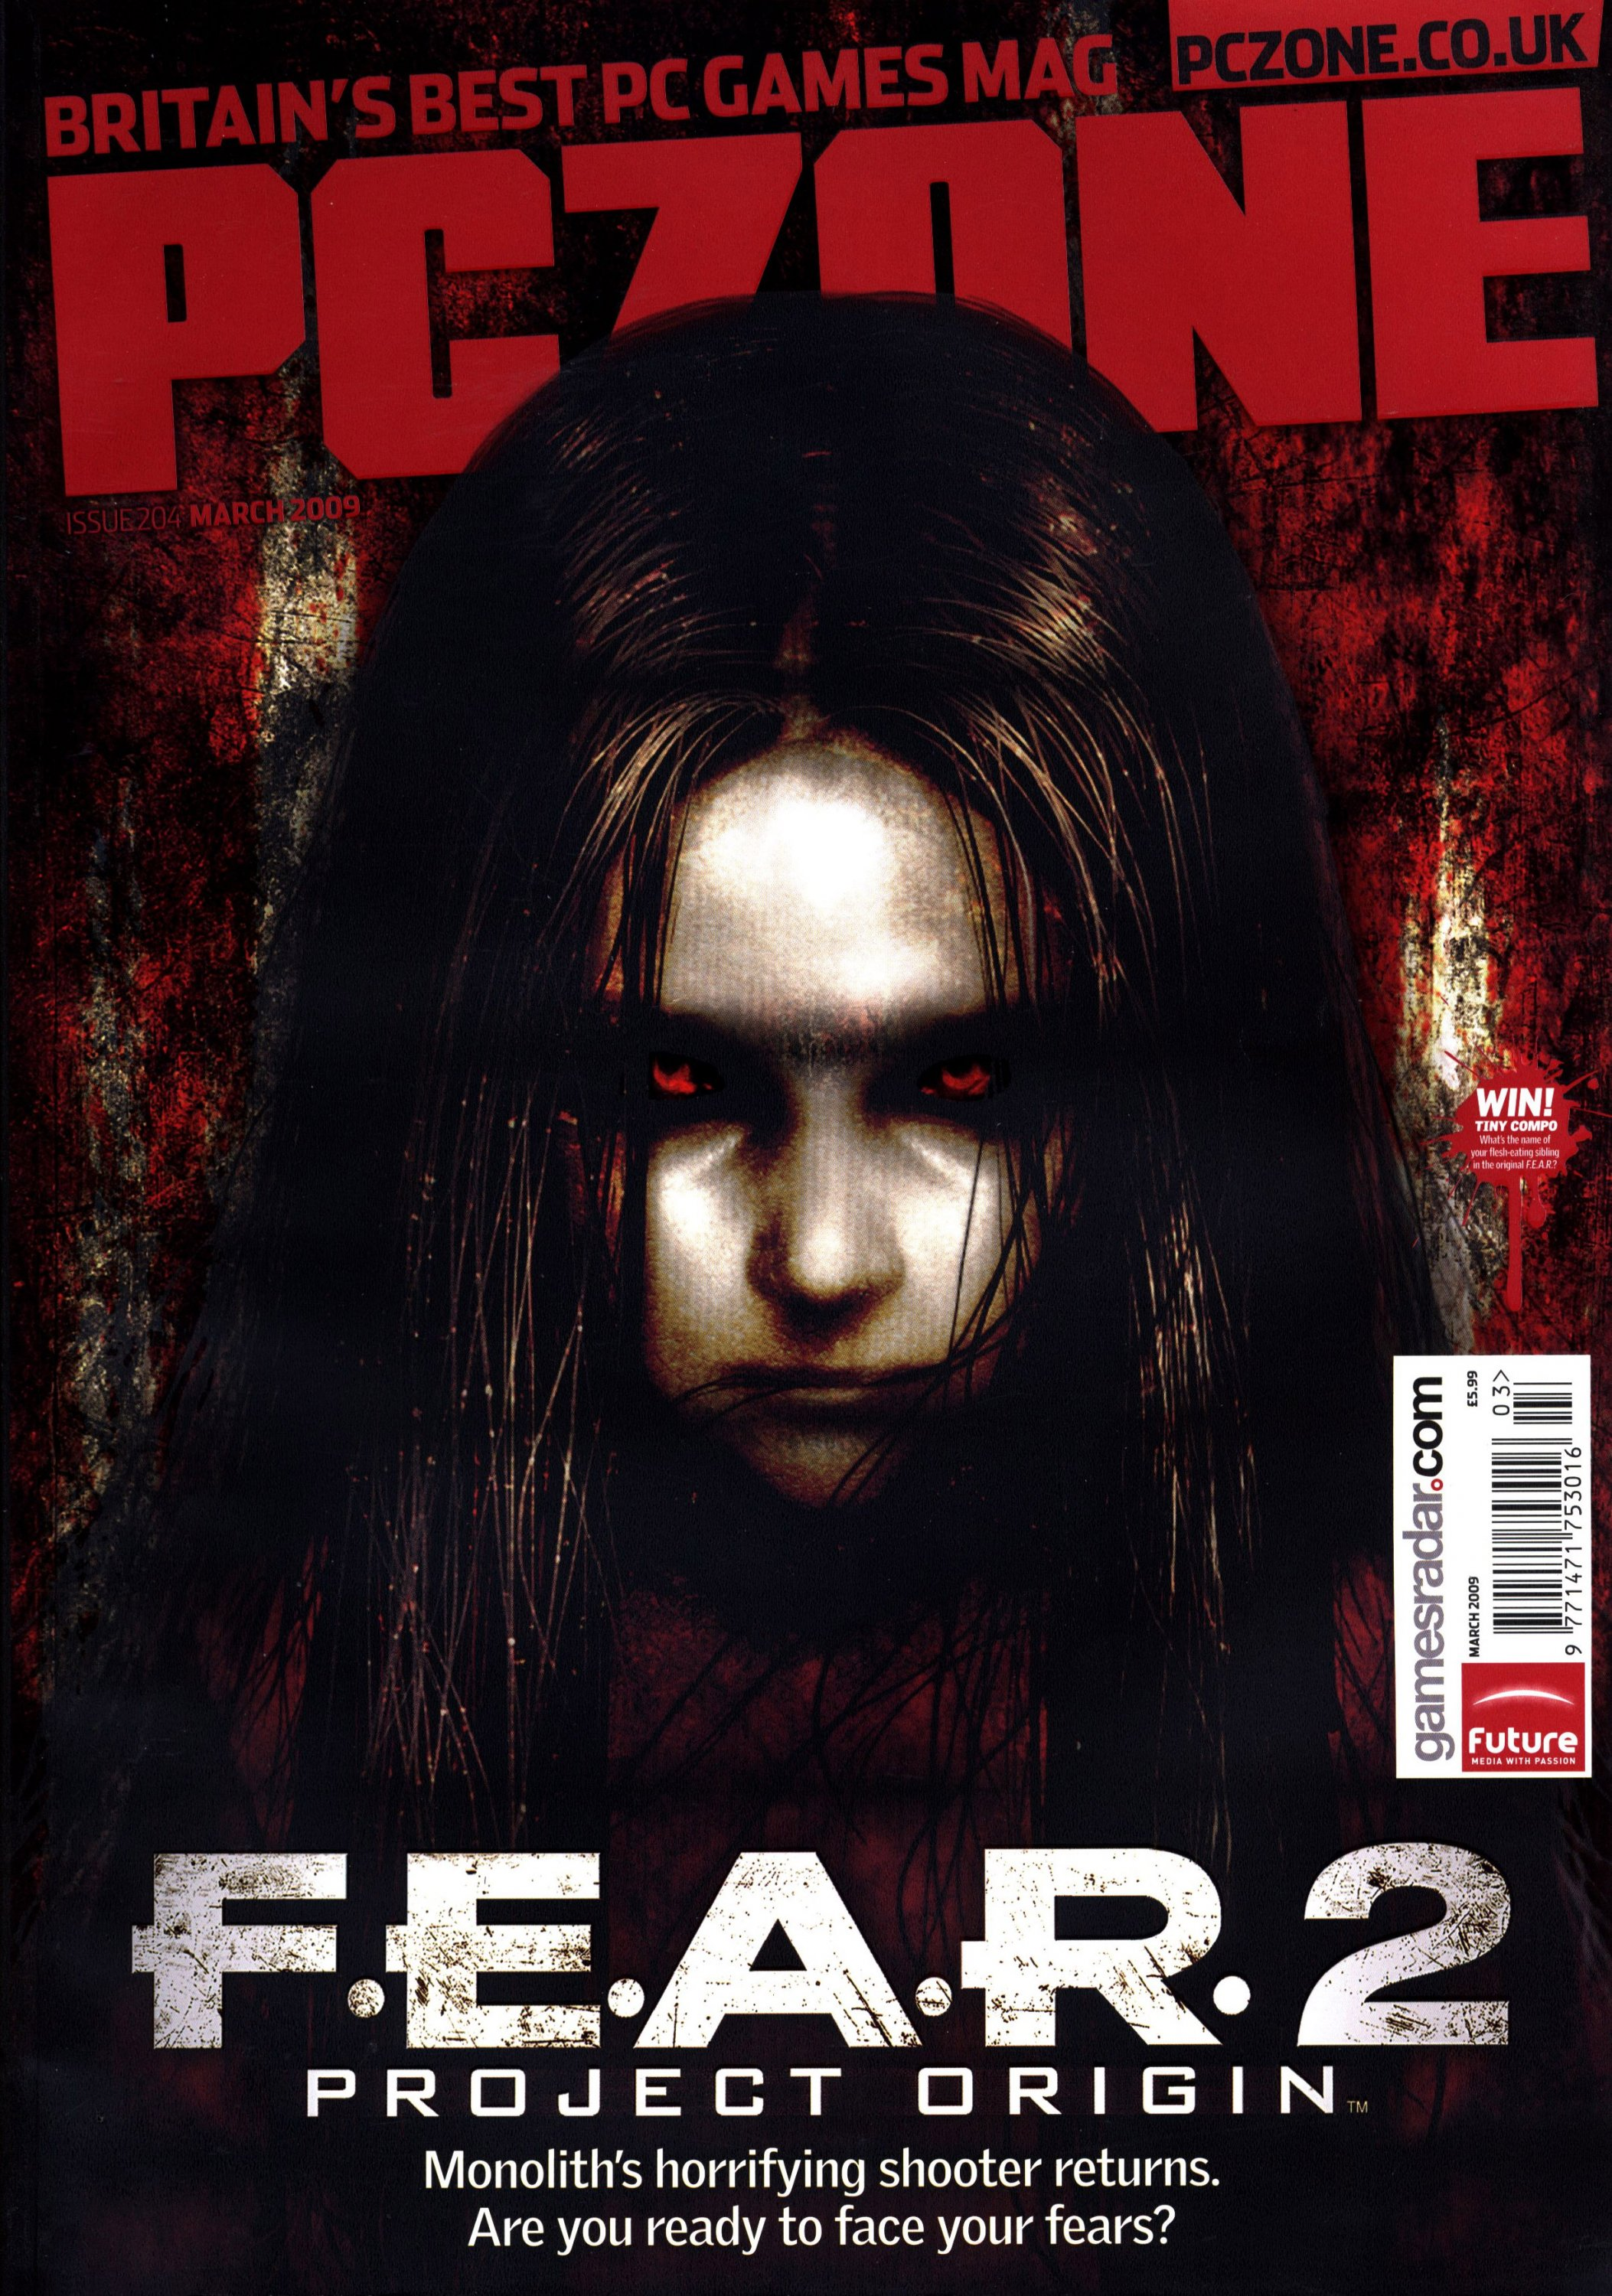 PC Zone Issue 204 (March 2009)